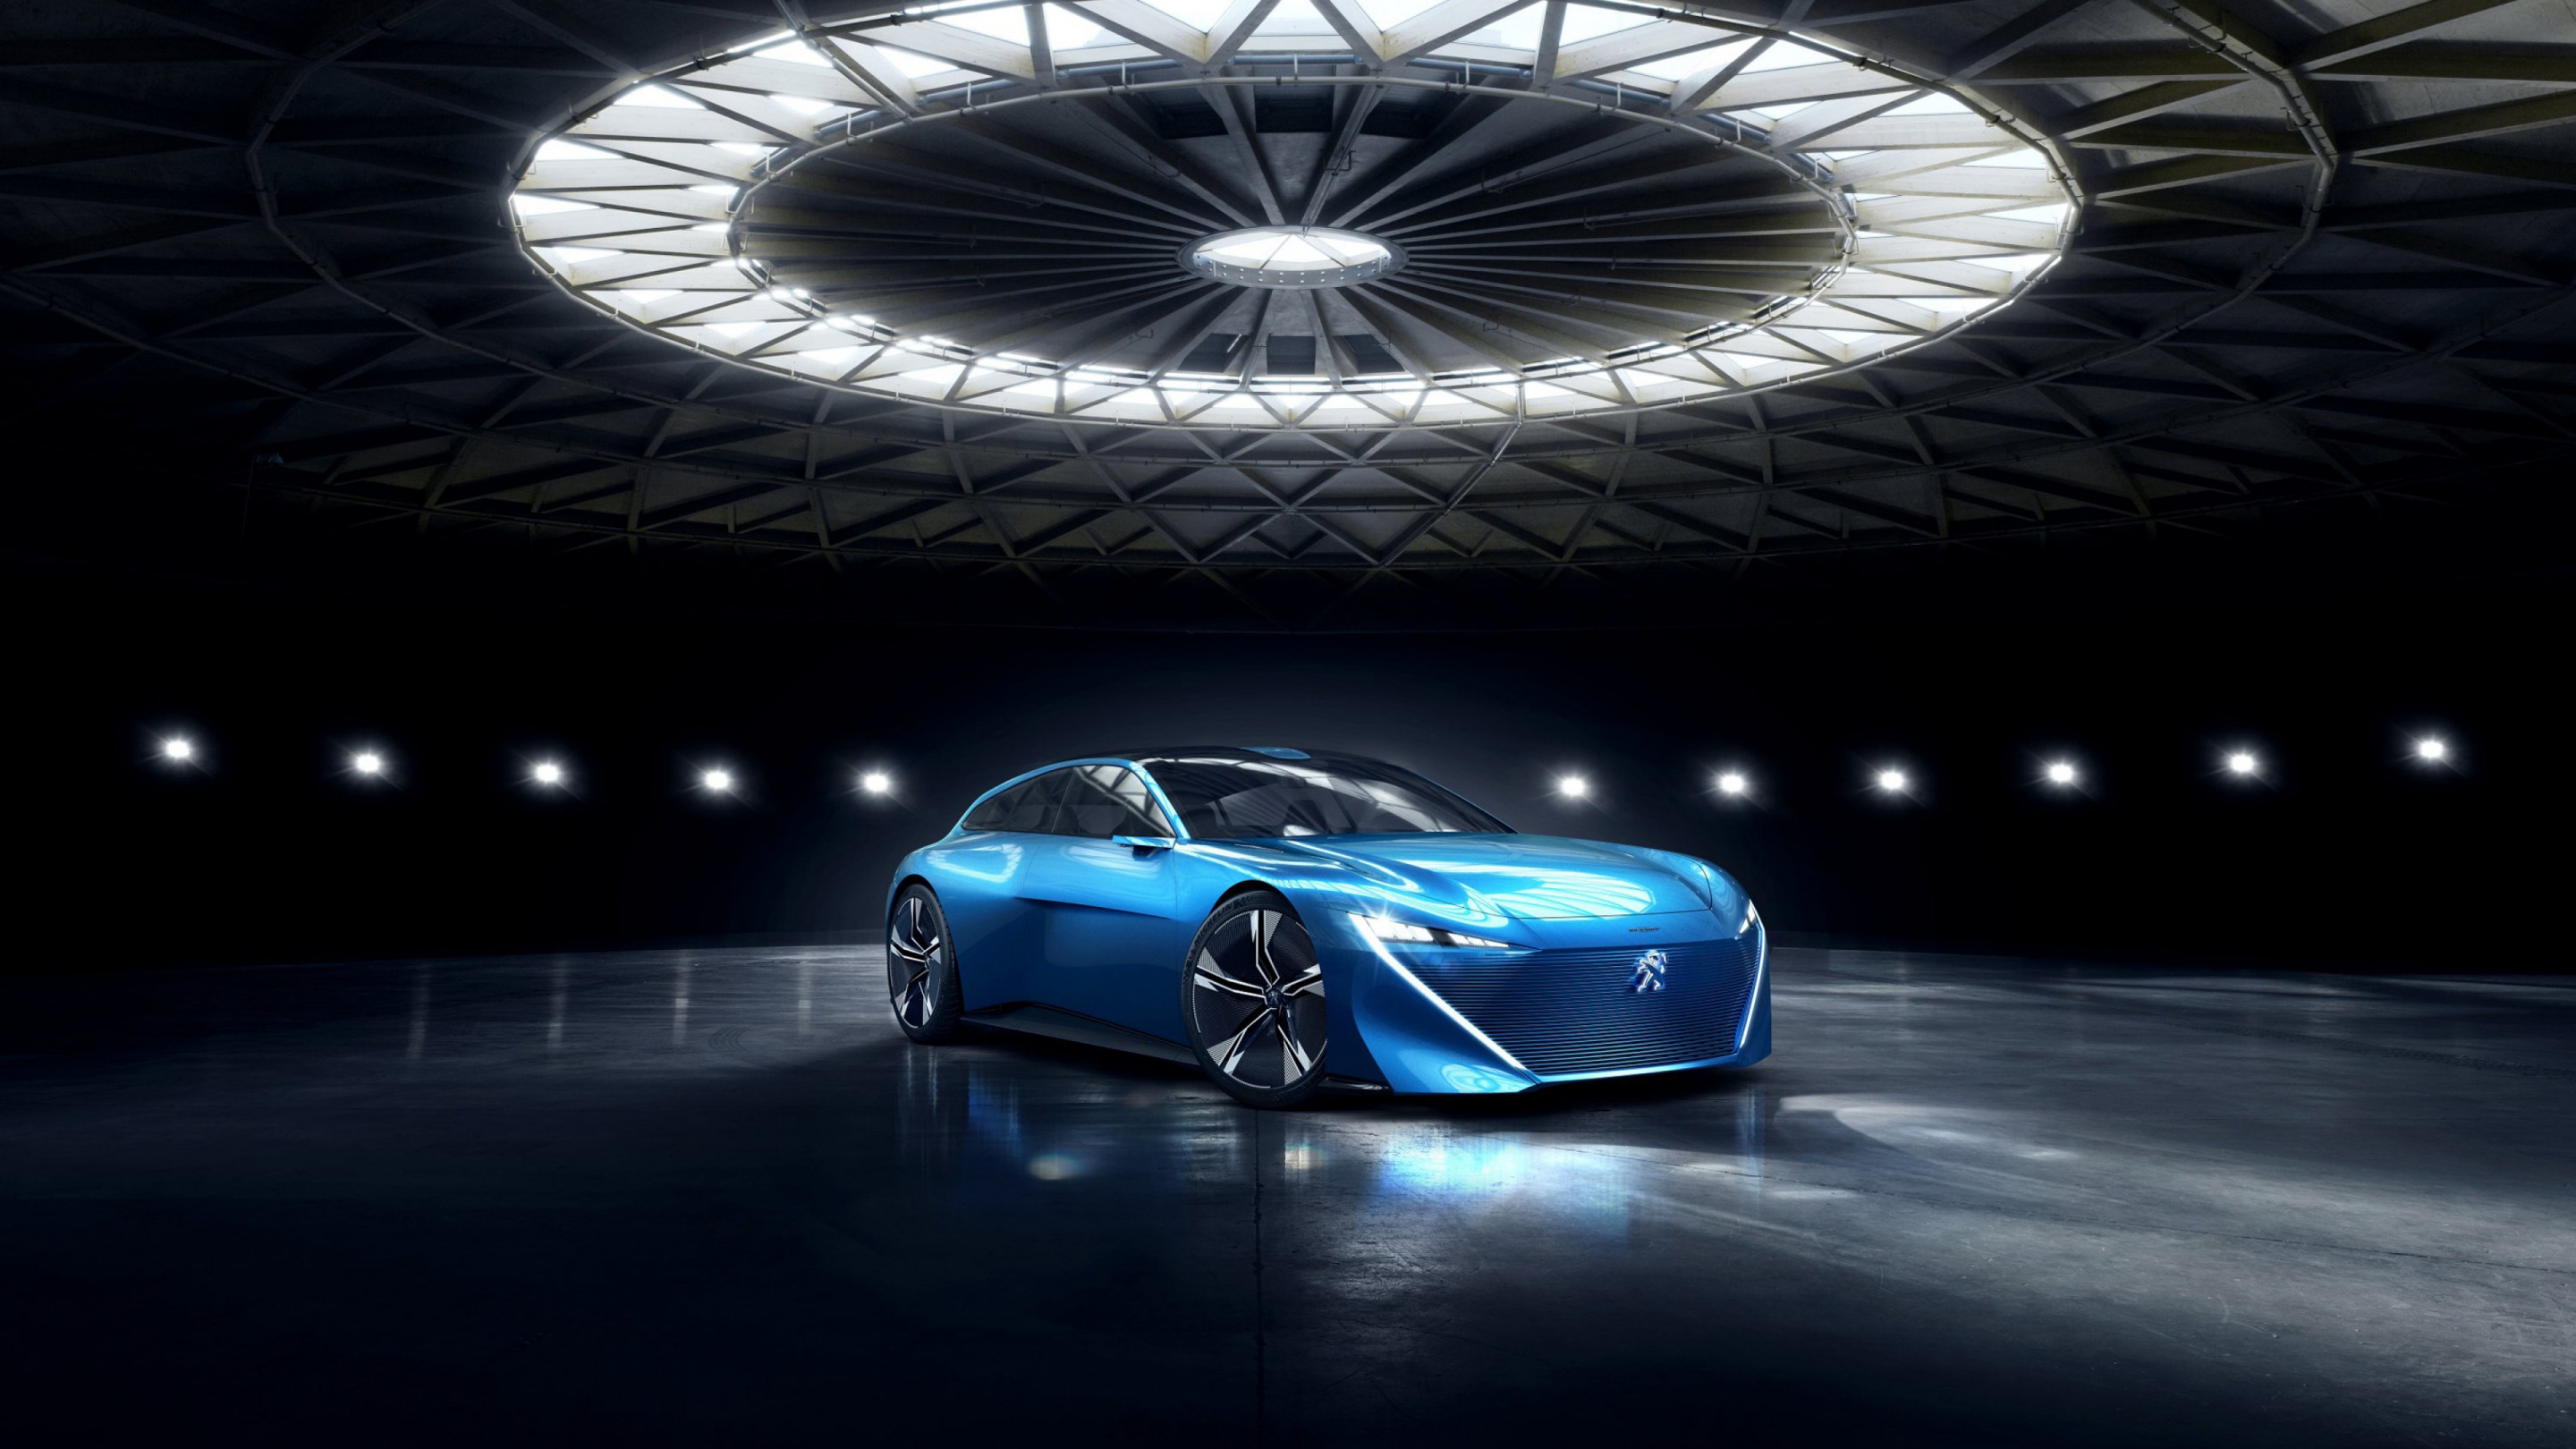 Peugeot Instinct wallpaper 2880x1620